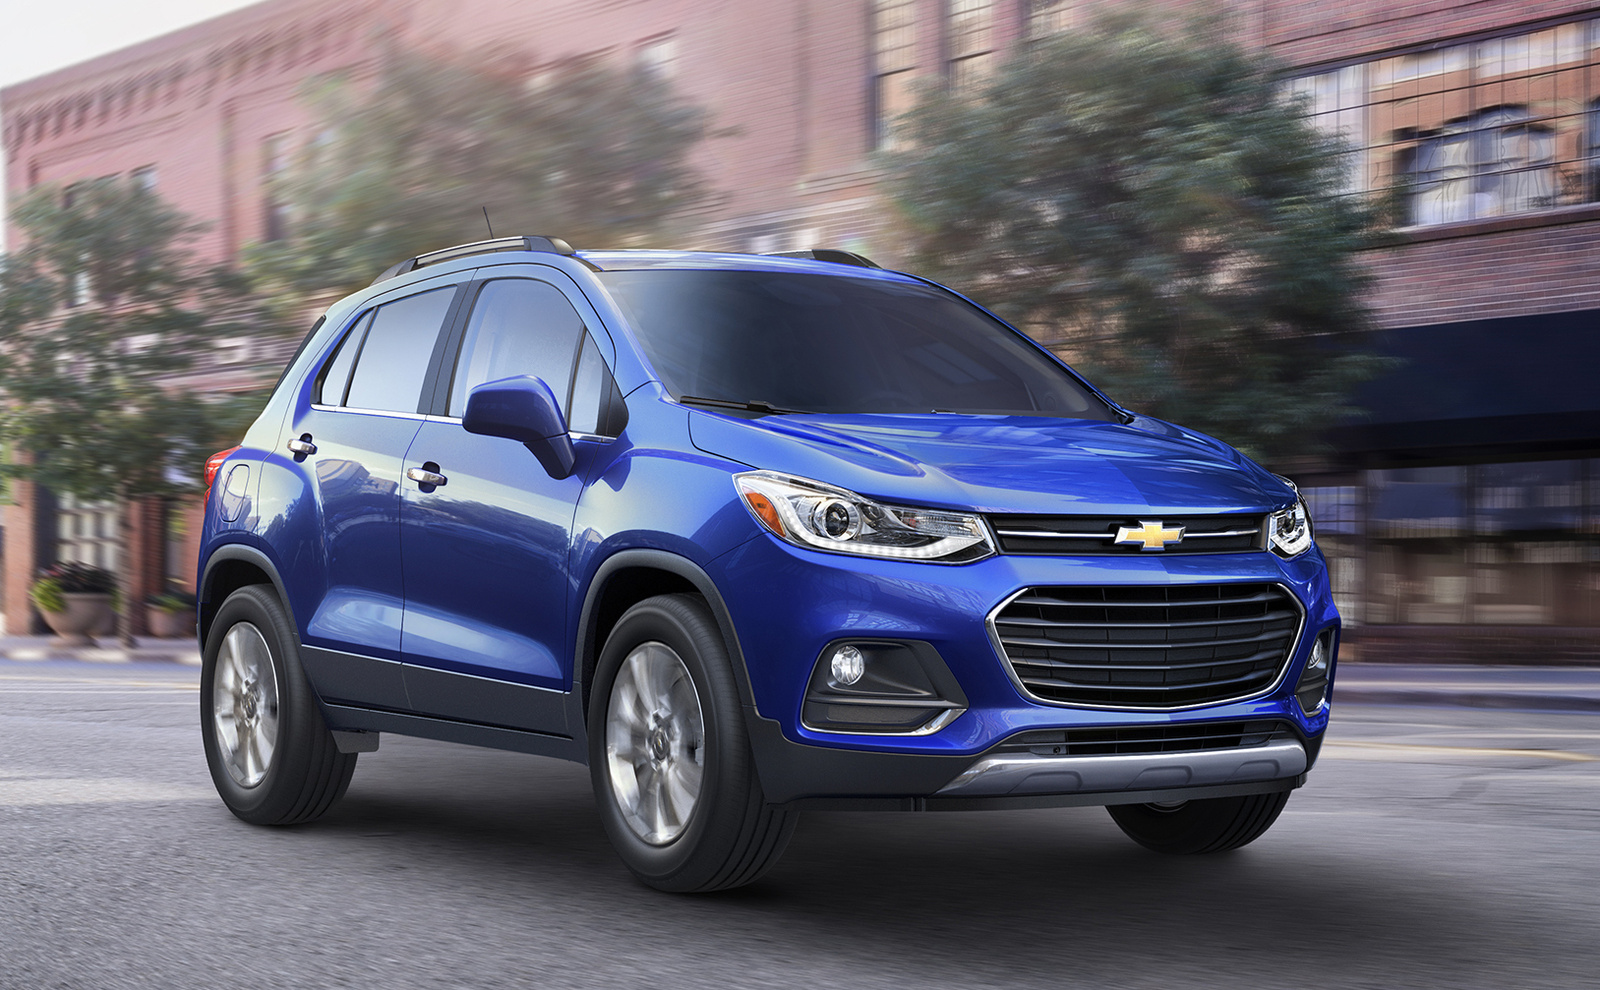 Image result for chevy trax 2017 no copyright image